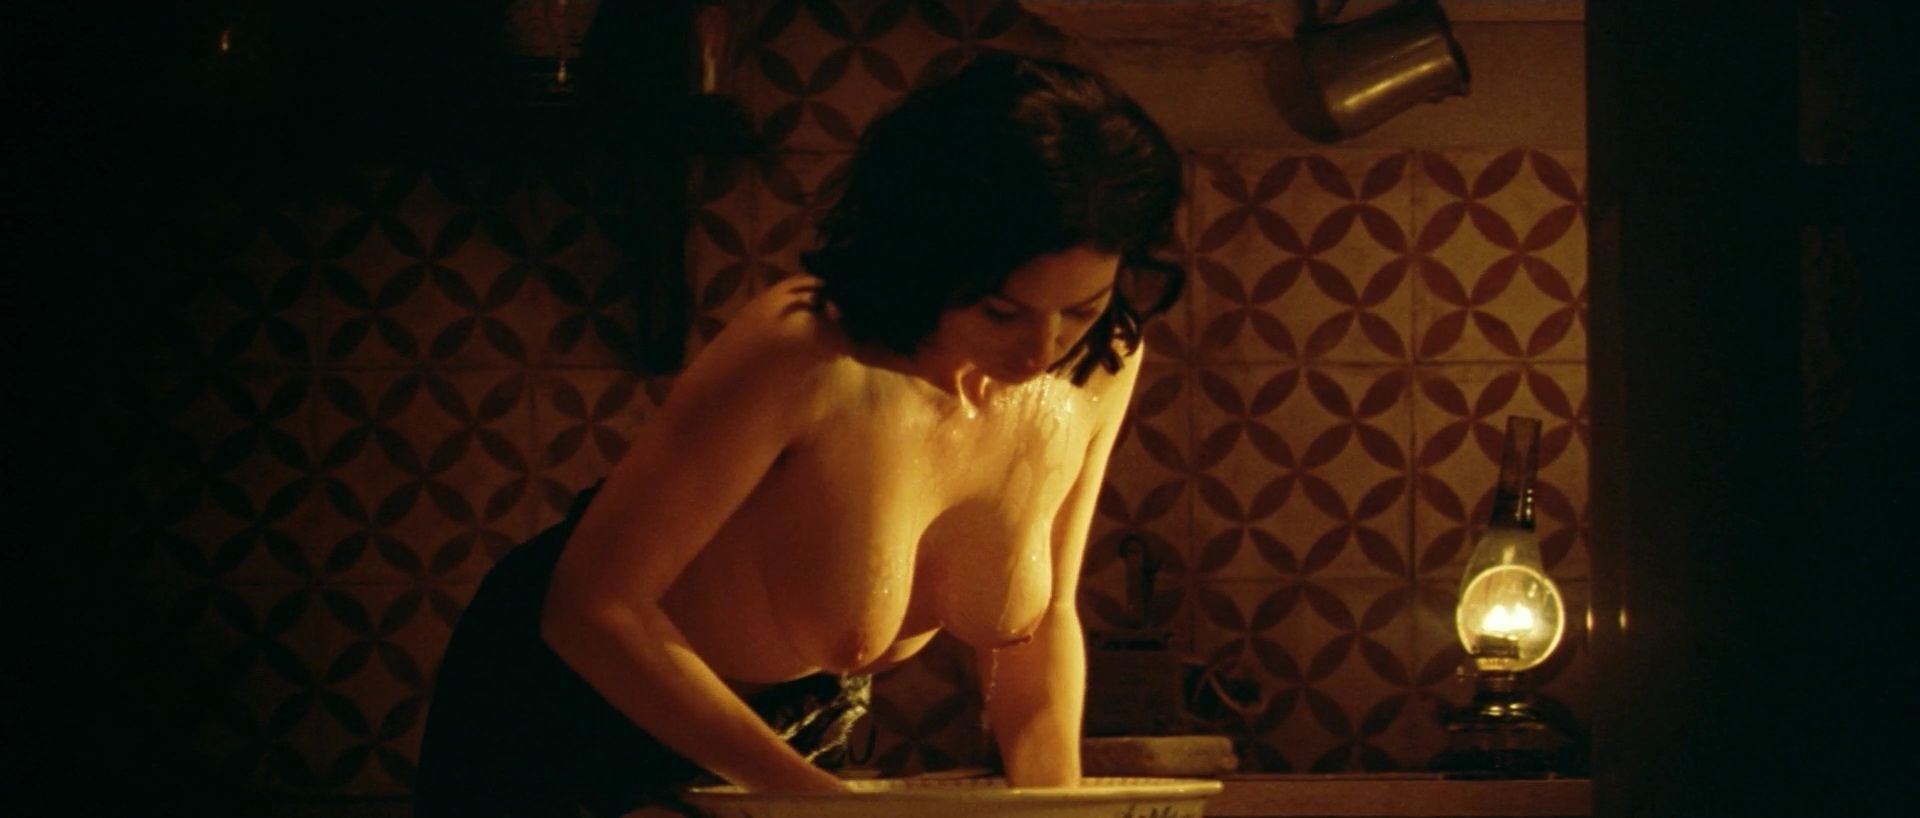 Was specially Monica bellucci malena sex scene was